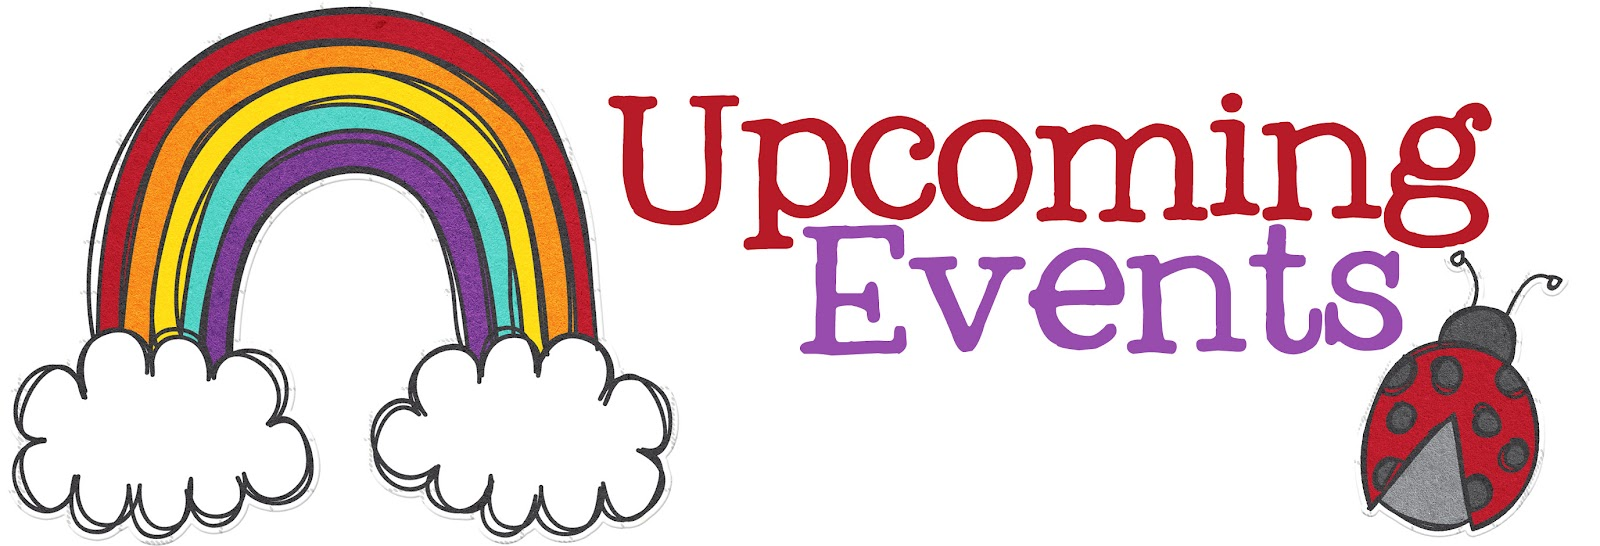 Clip Art Calendar Of Events : Upcomingevents clipart suggest